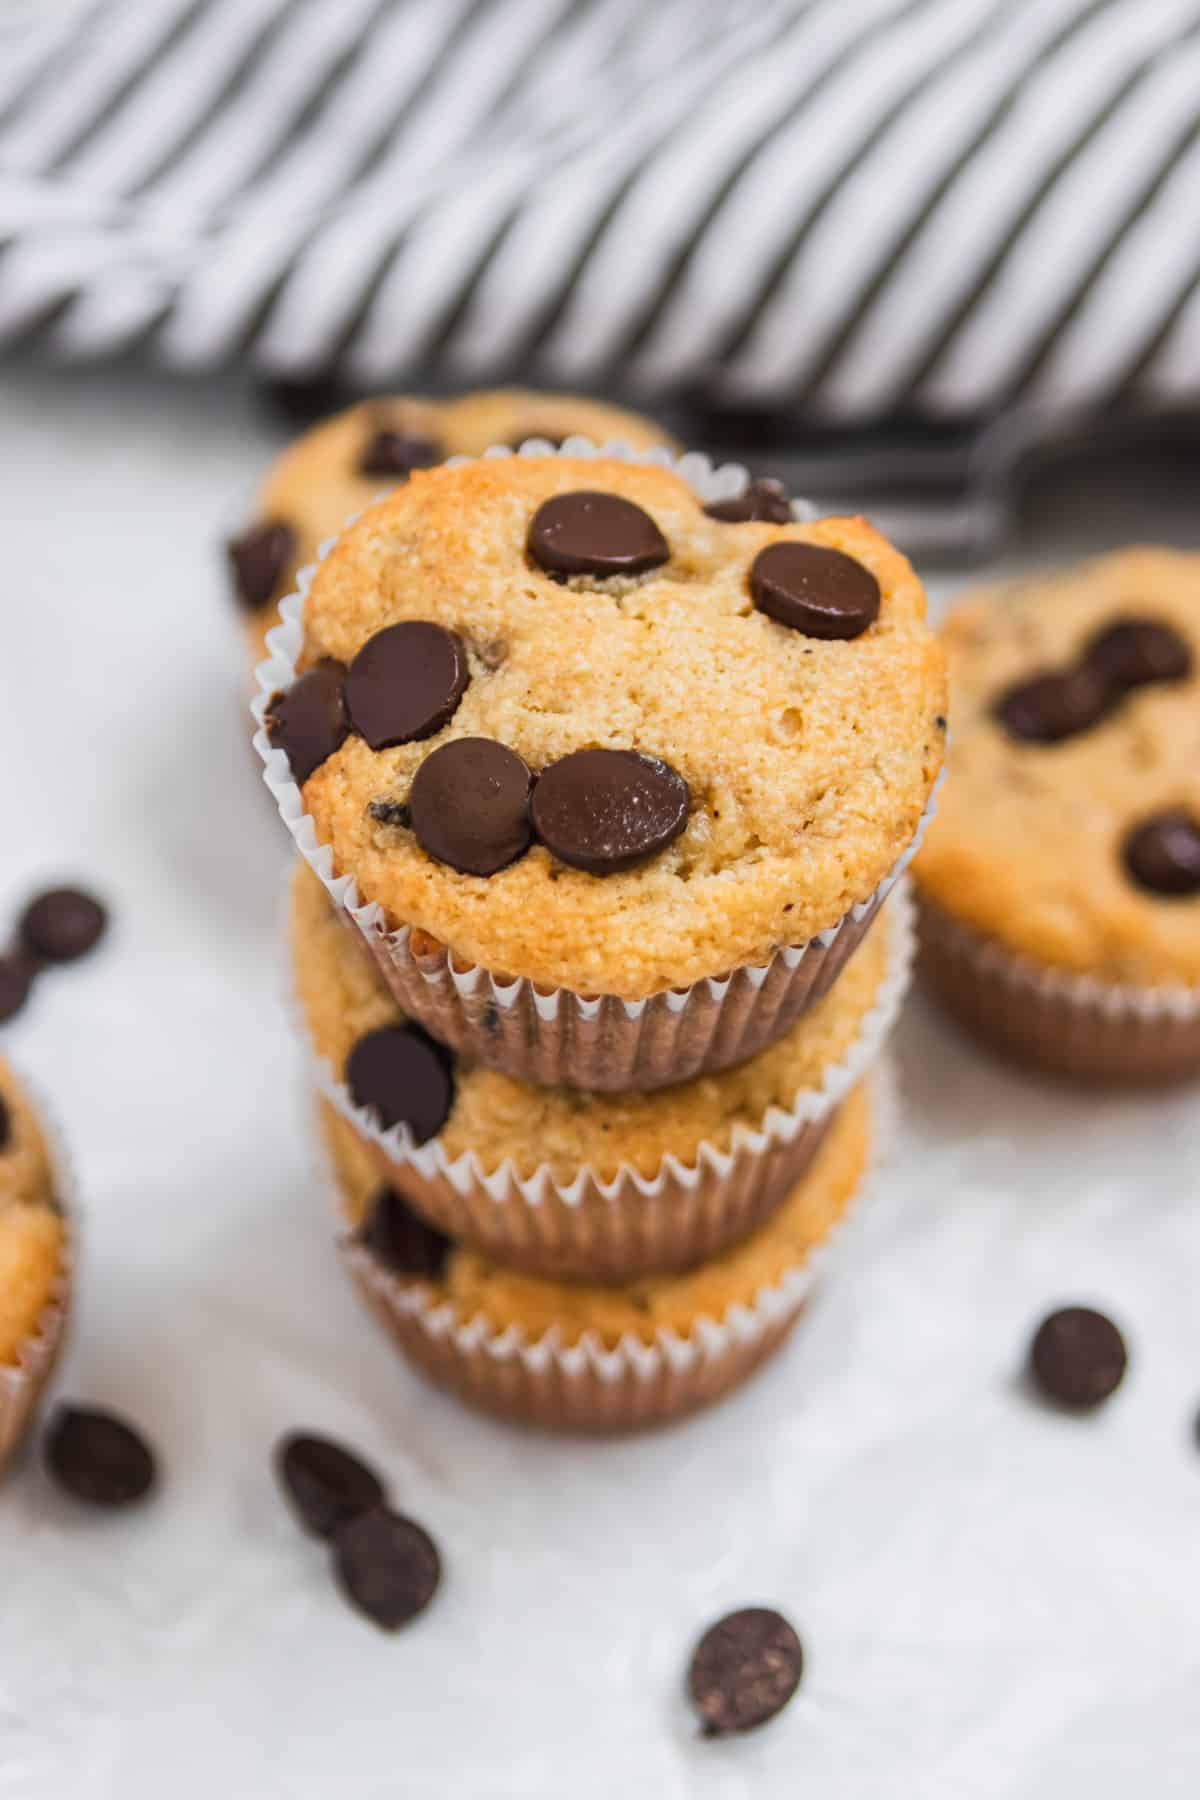 Stack of almond flour banana muffins with chocolate chips on wax paper.